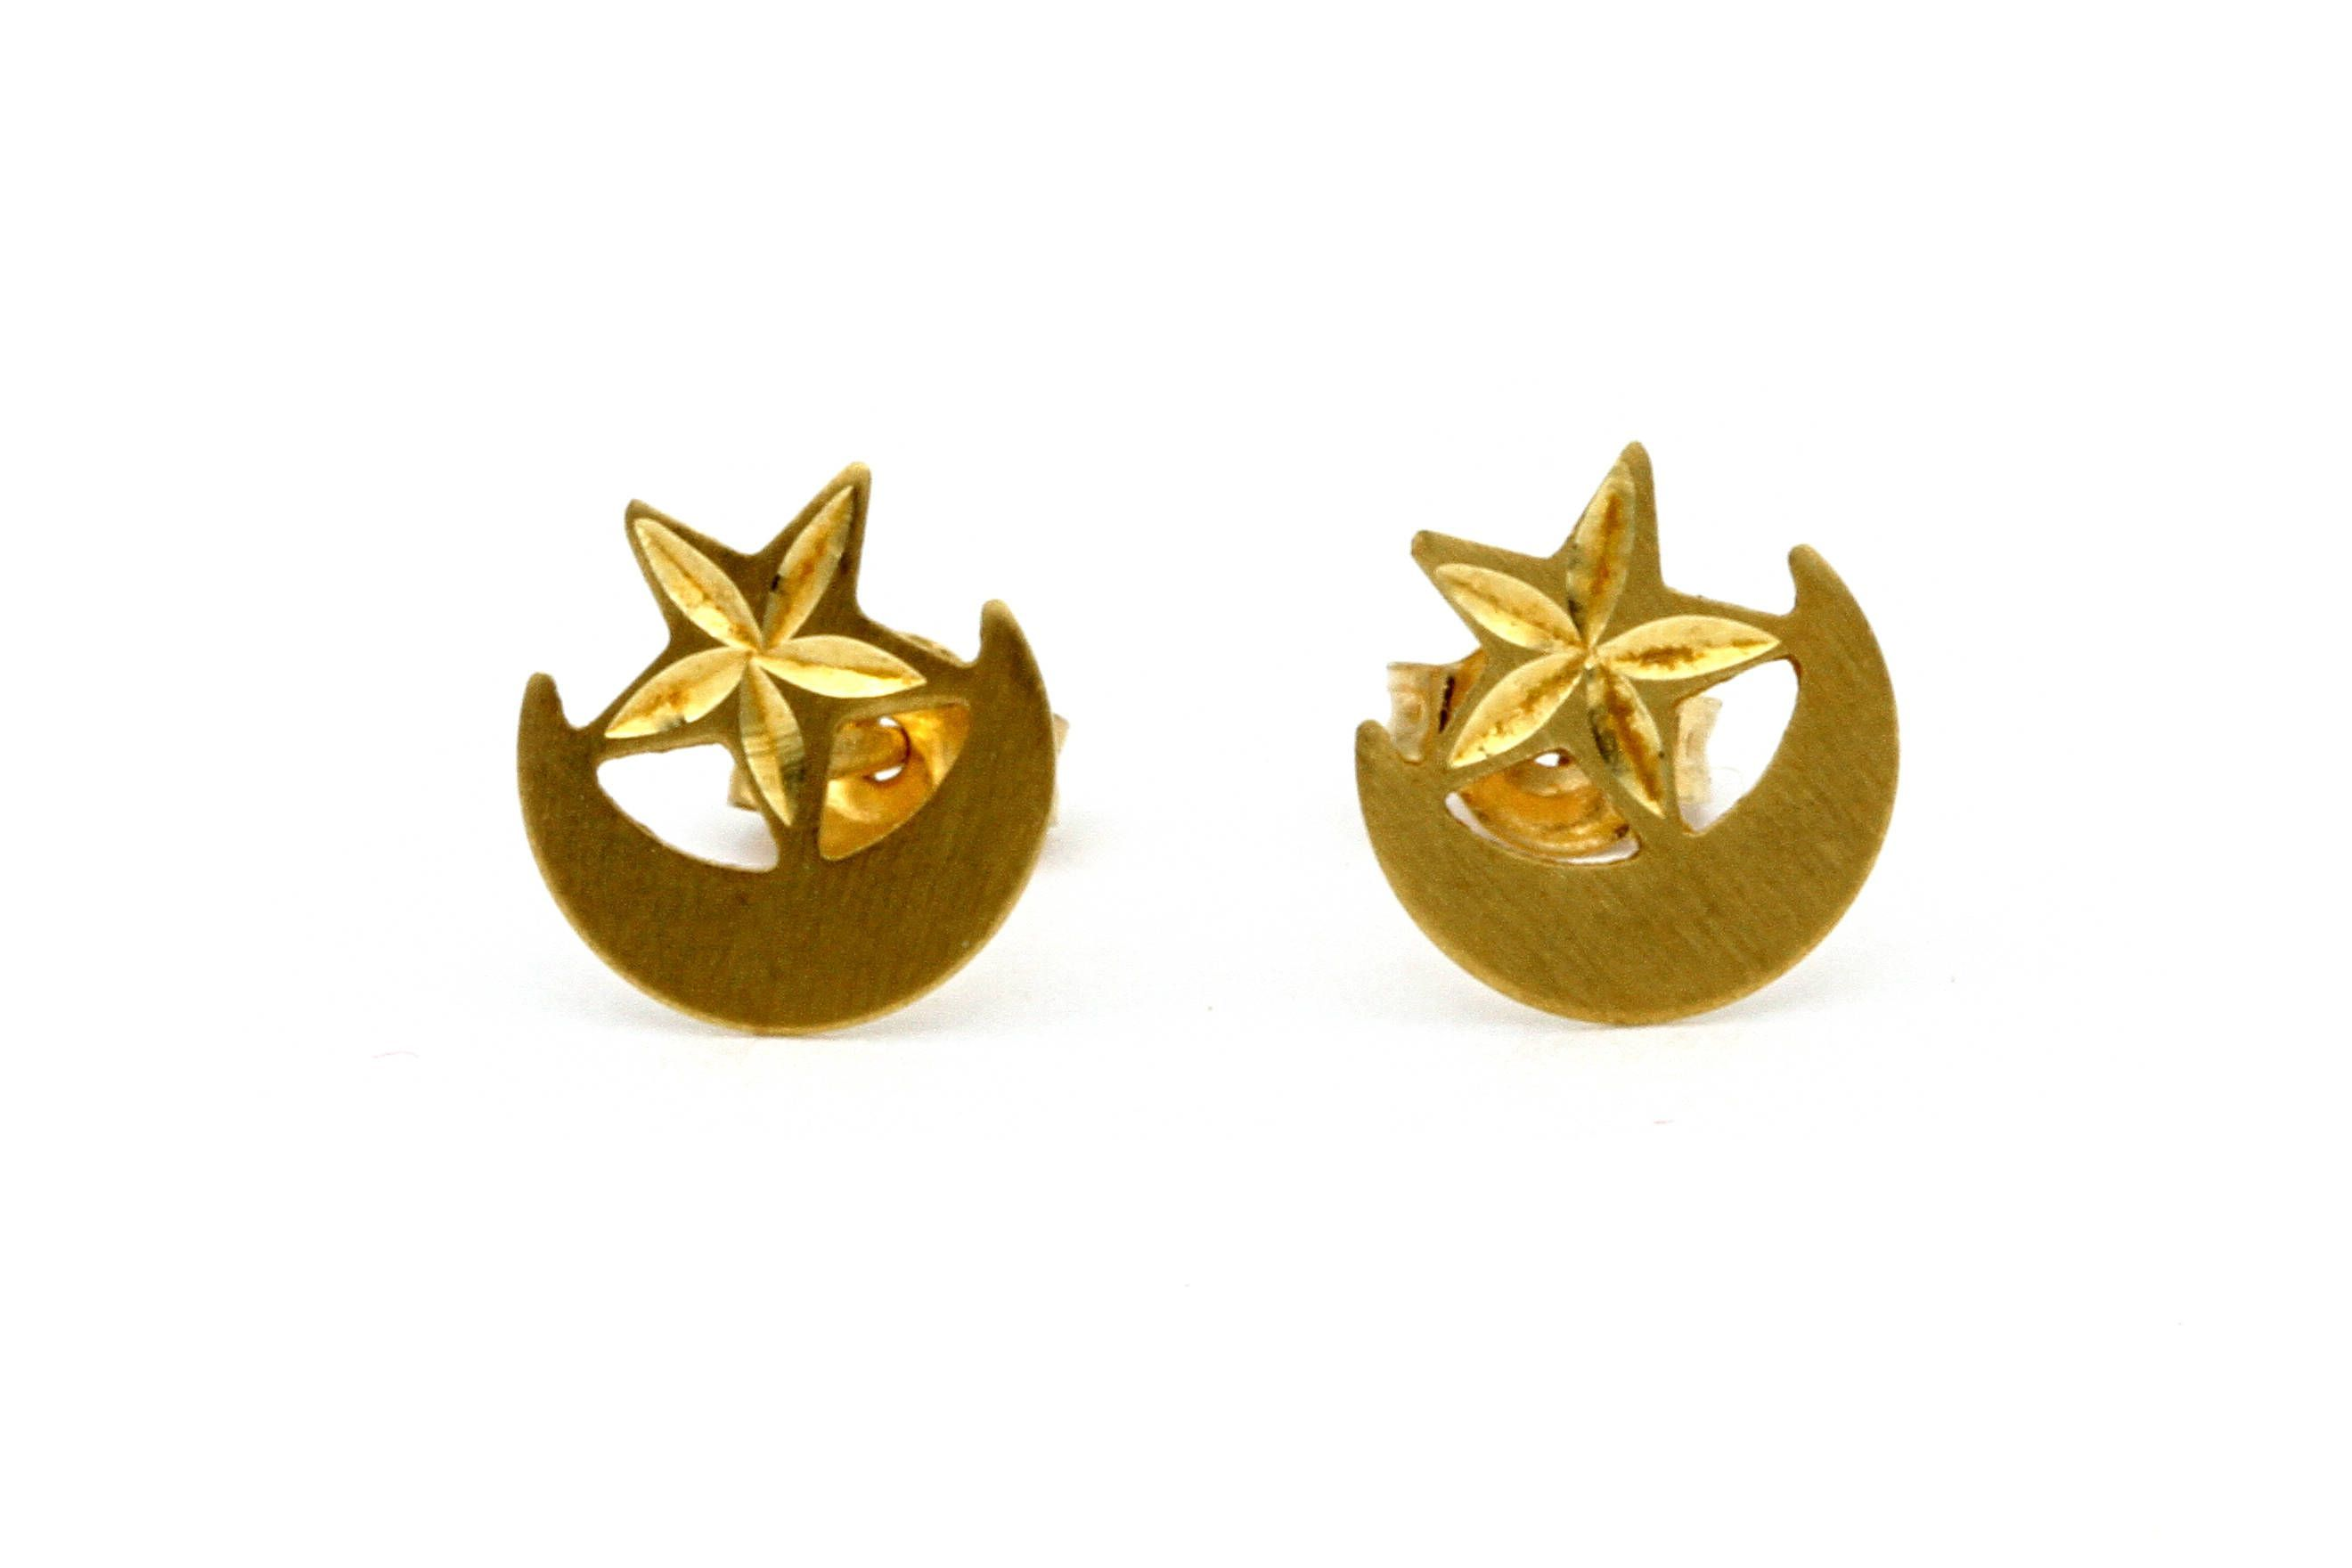 bling baby cz cl gold april stud studs az safety yellow screwback jewelry eh